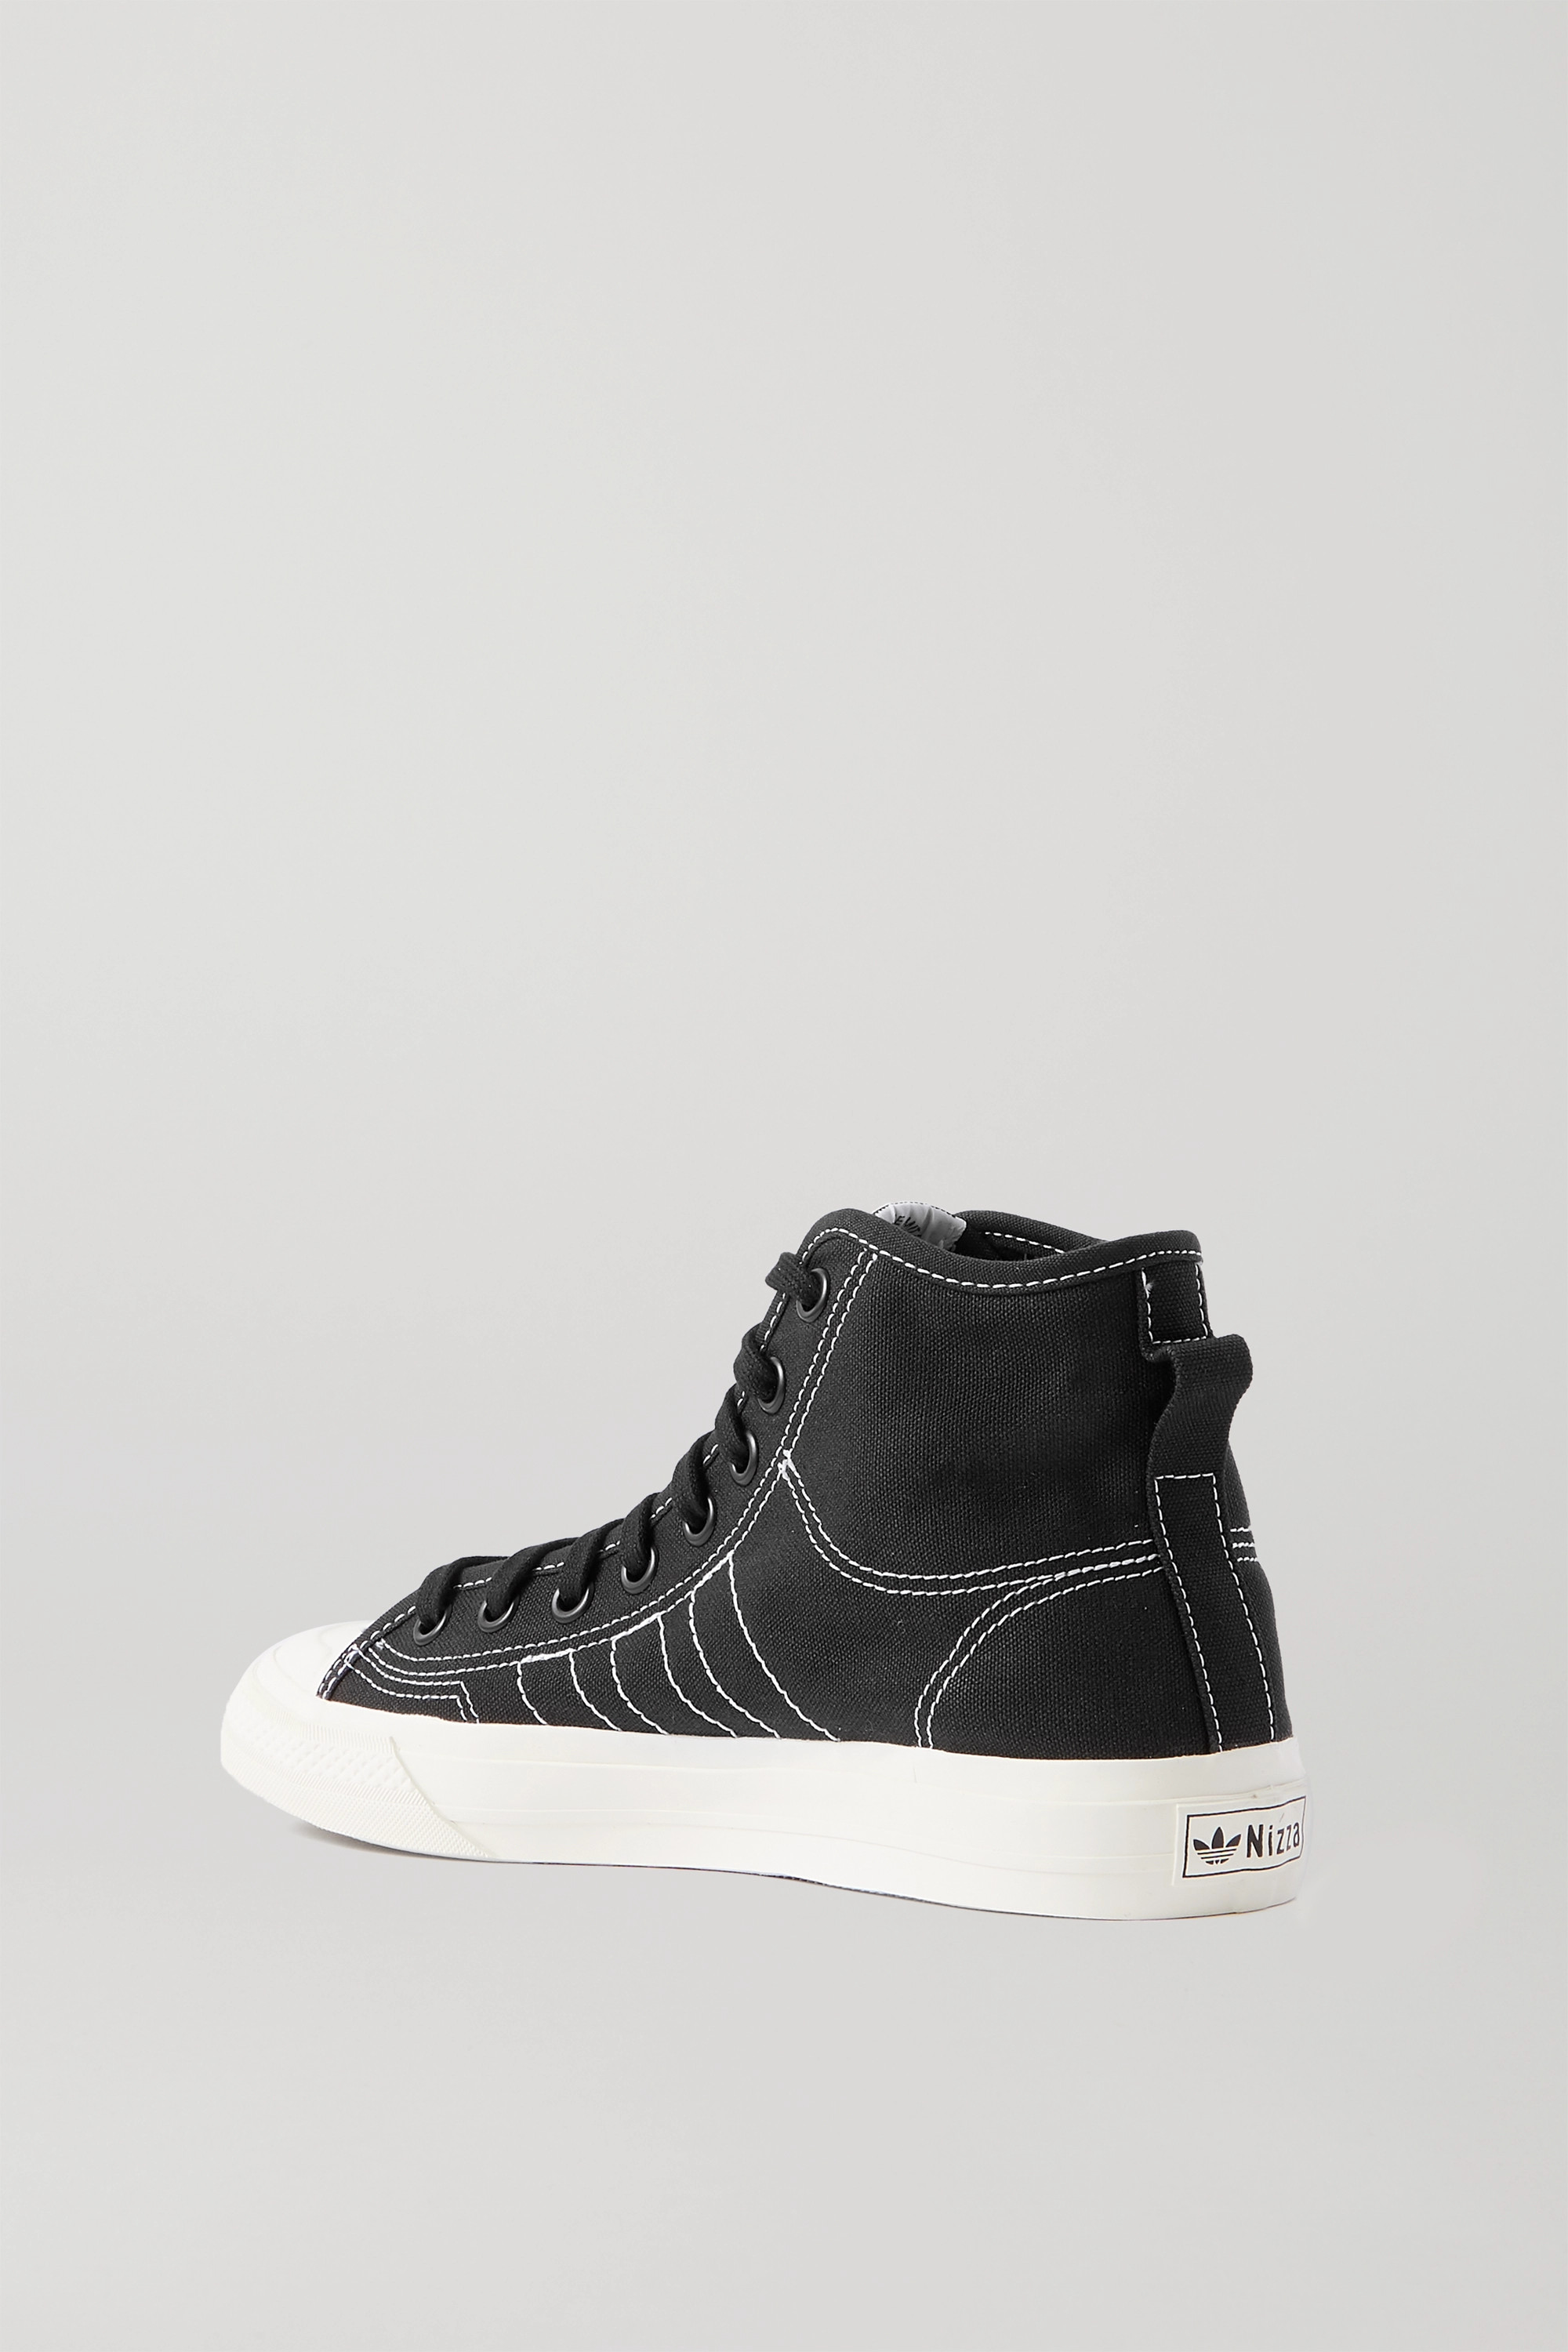 ADIDAS ORIGINALS Nizza topstitched canvas high-top sneakers